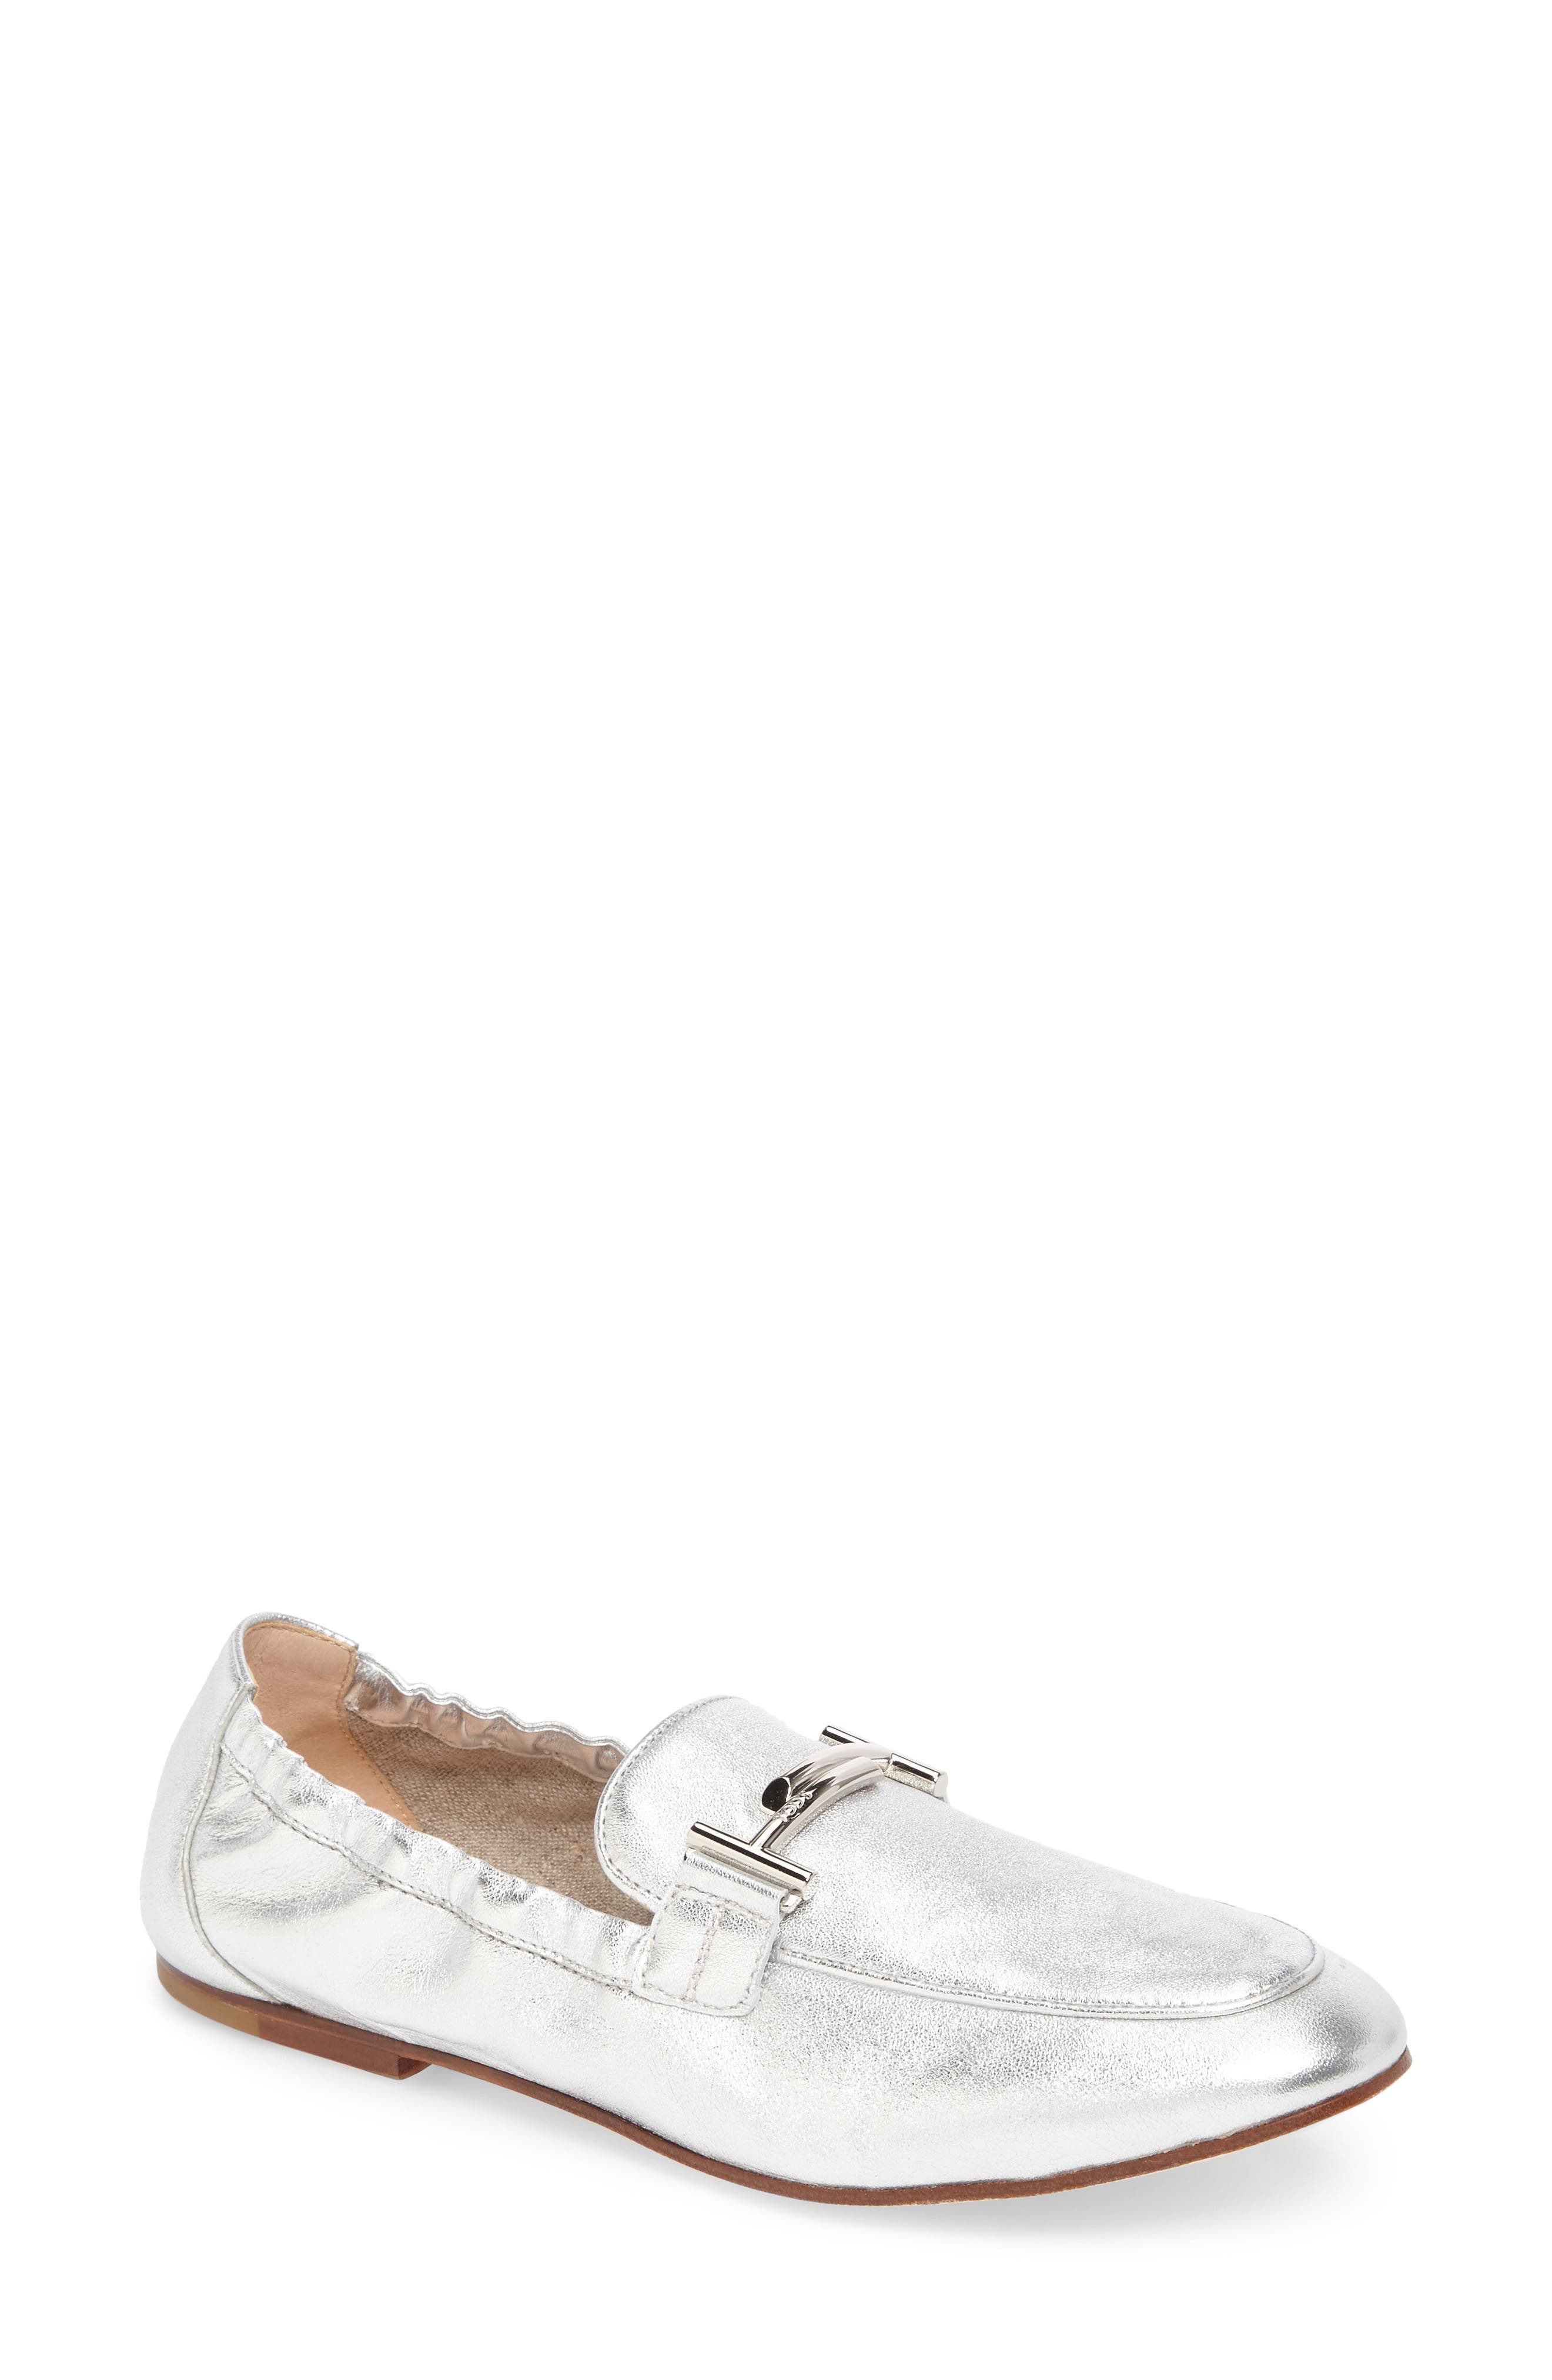 Double T Scrunch Loafer,                         Main,                         color, Silver